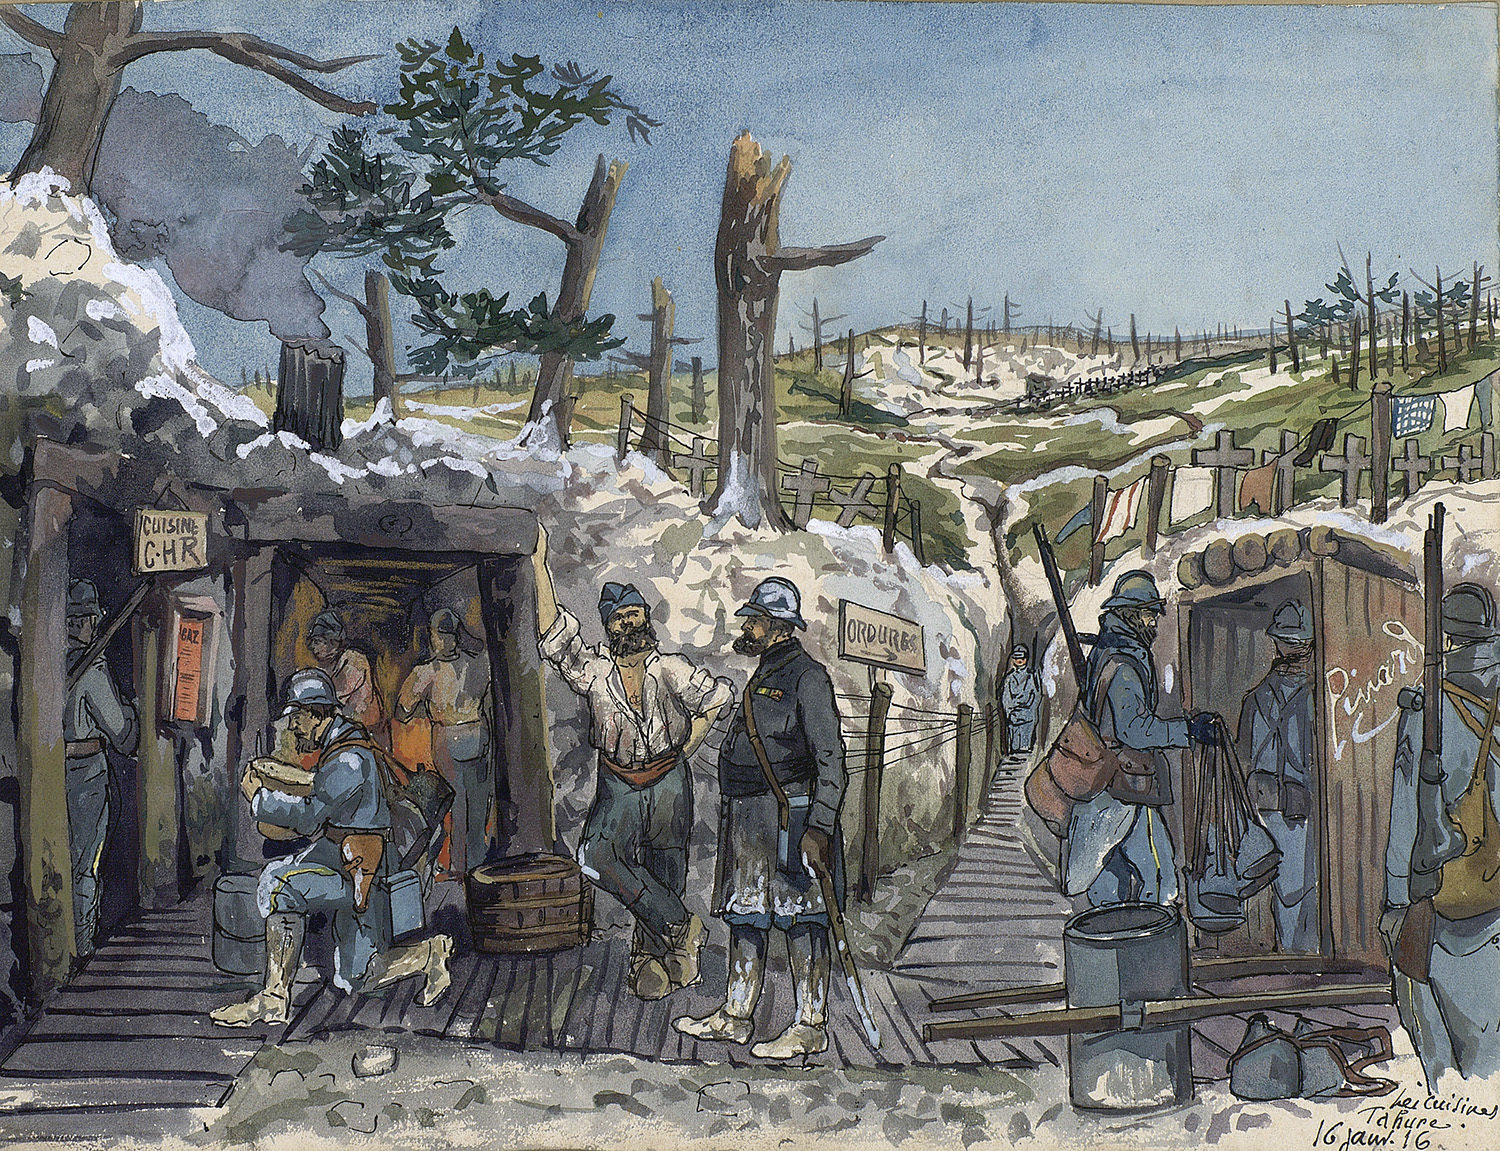 Trench scene on the Western Front, 1915-1917, Alphonse Robine, Europeana 1914-1918 / Madame Nicole Robine, CC BY-SA